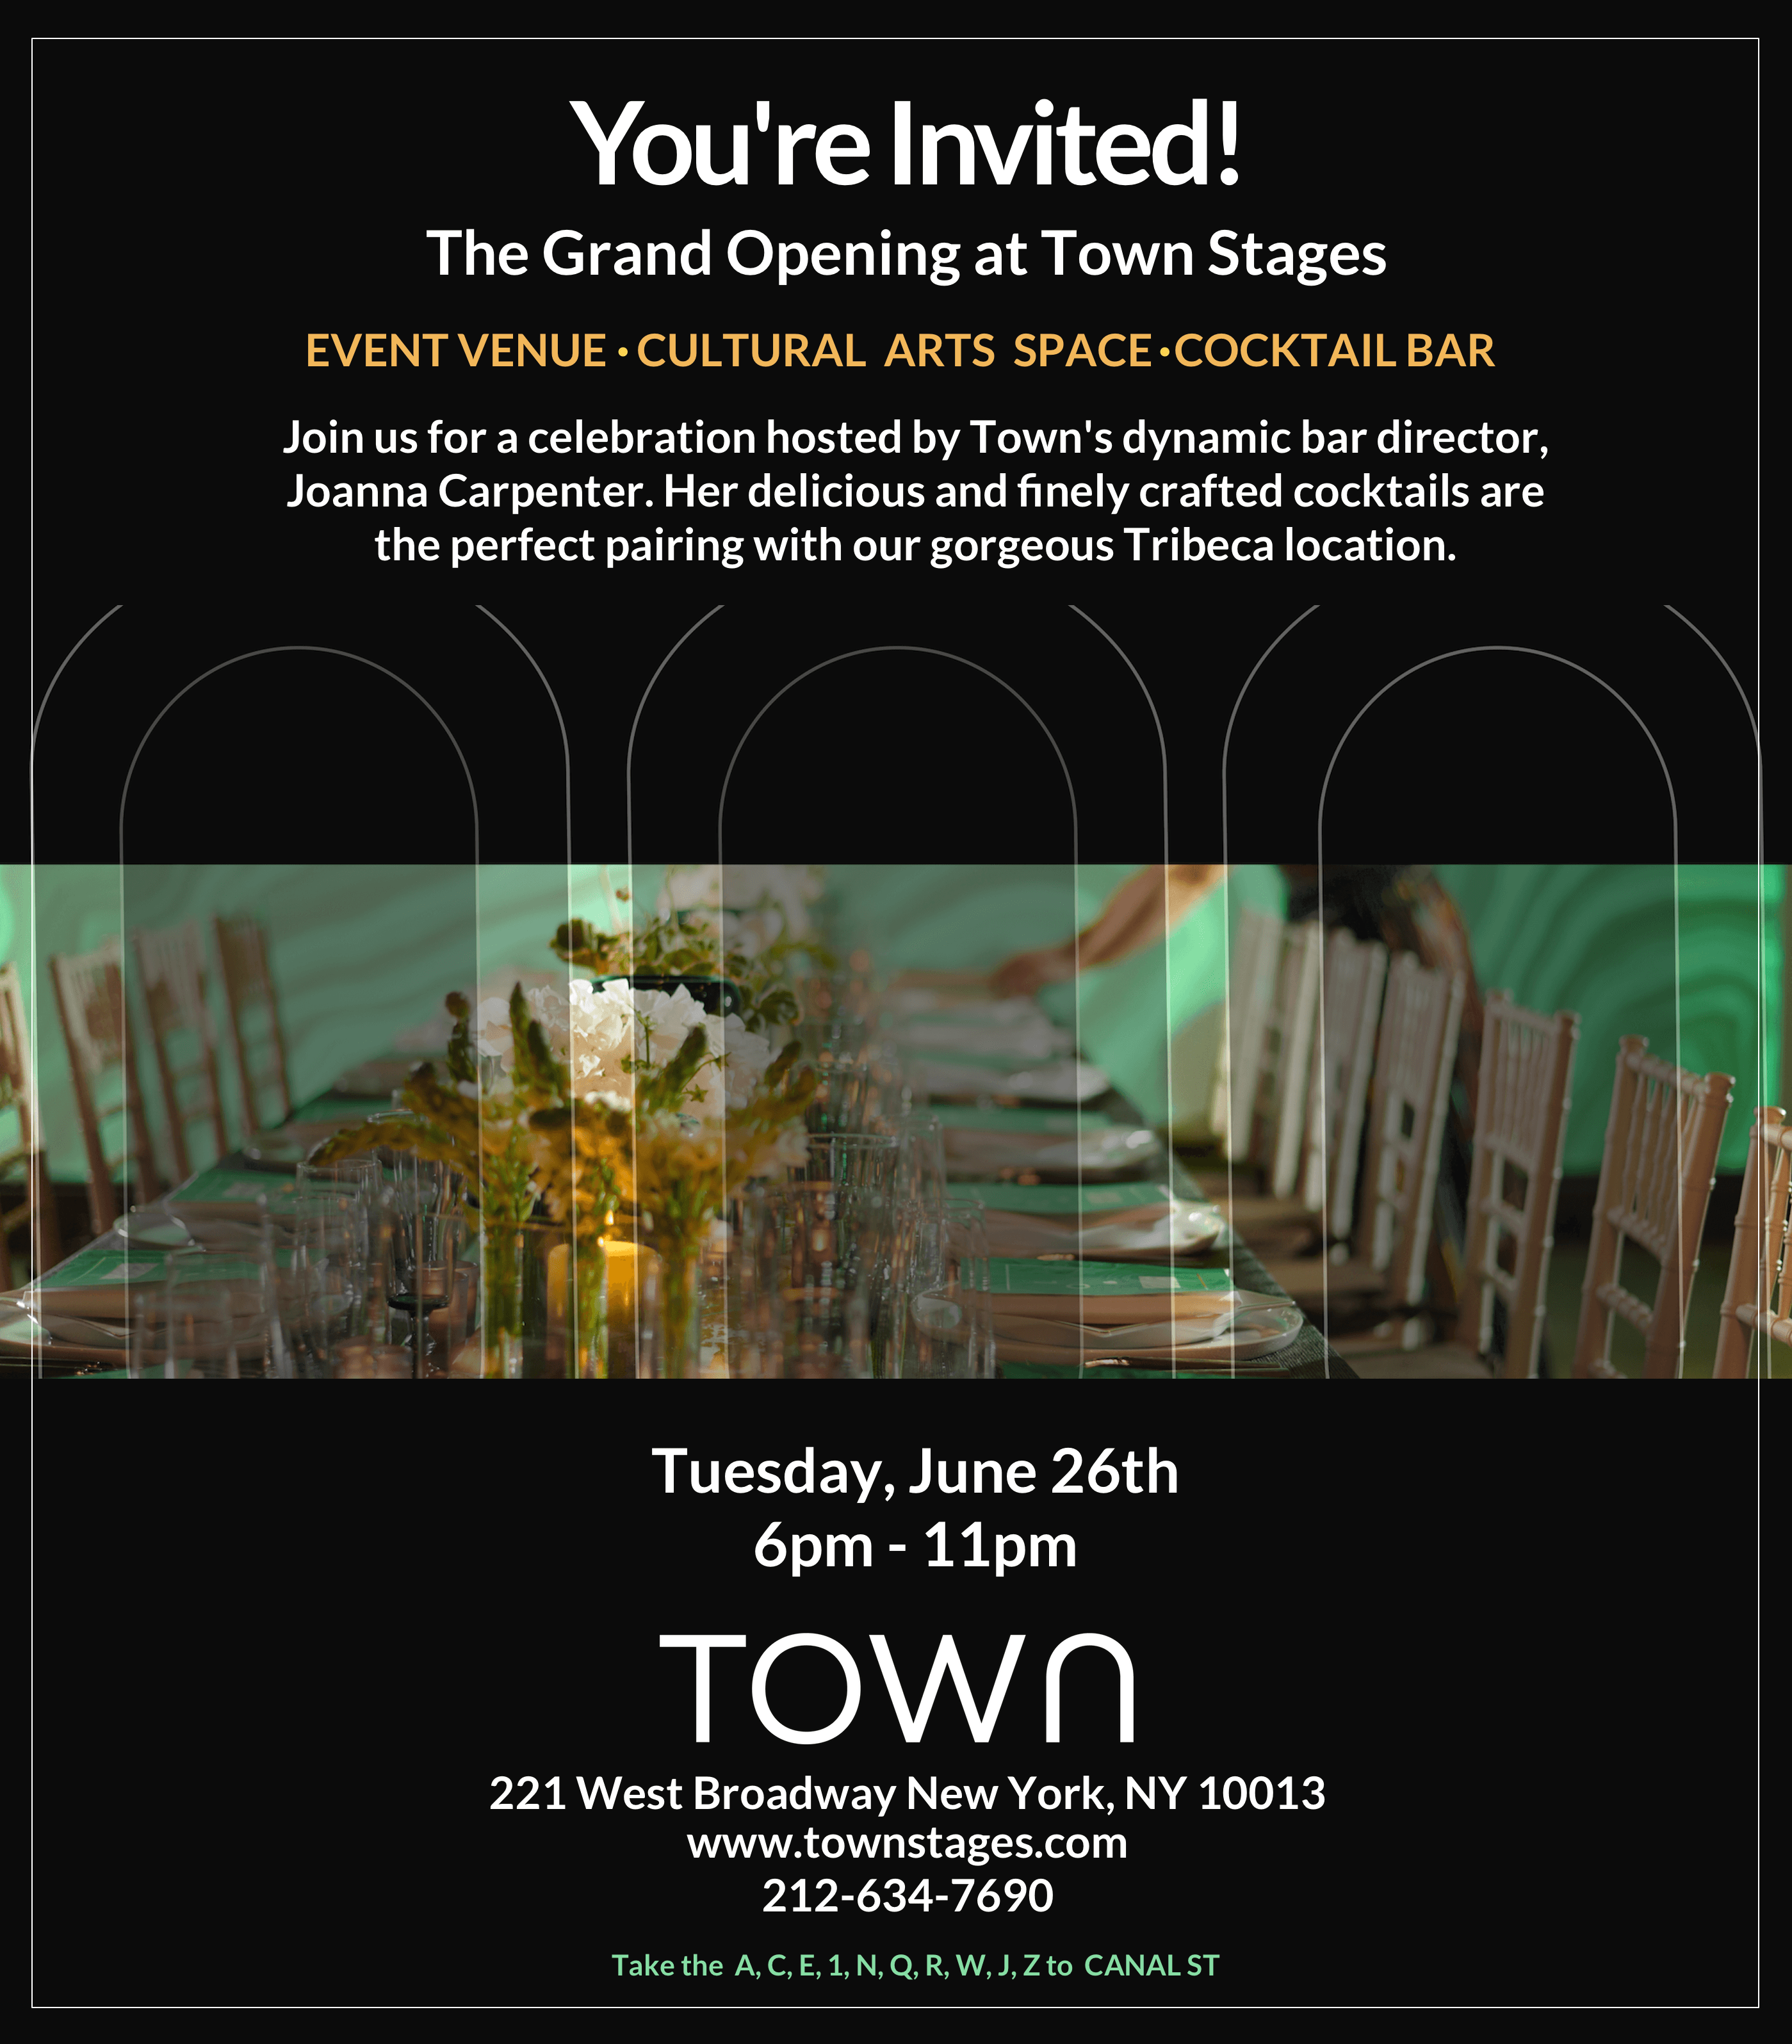 You're Invited - Town Stages Grand Opening